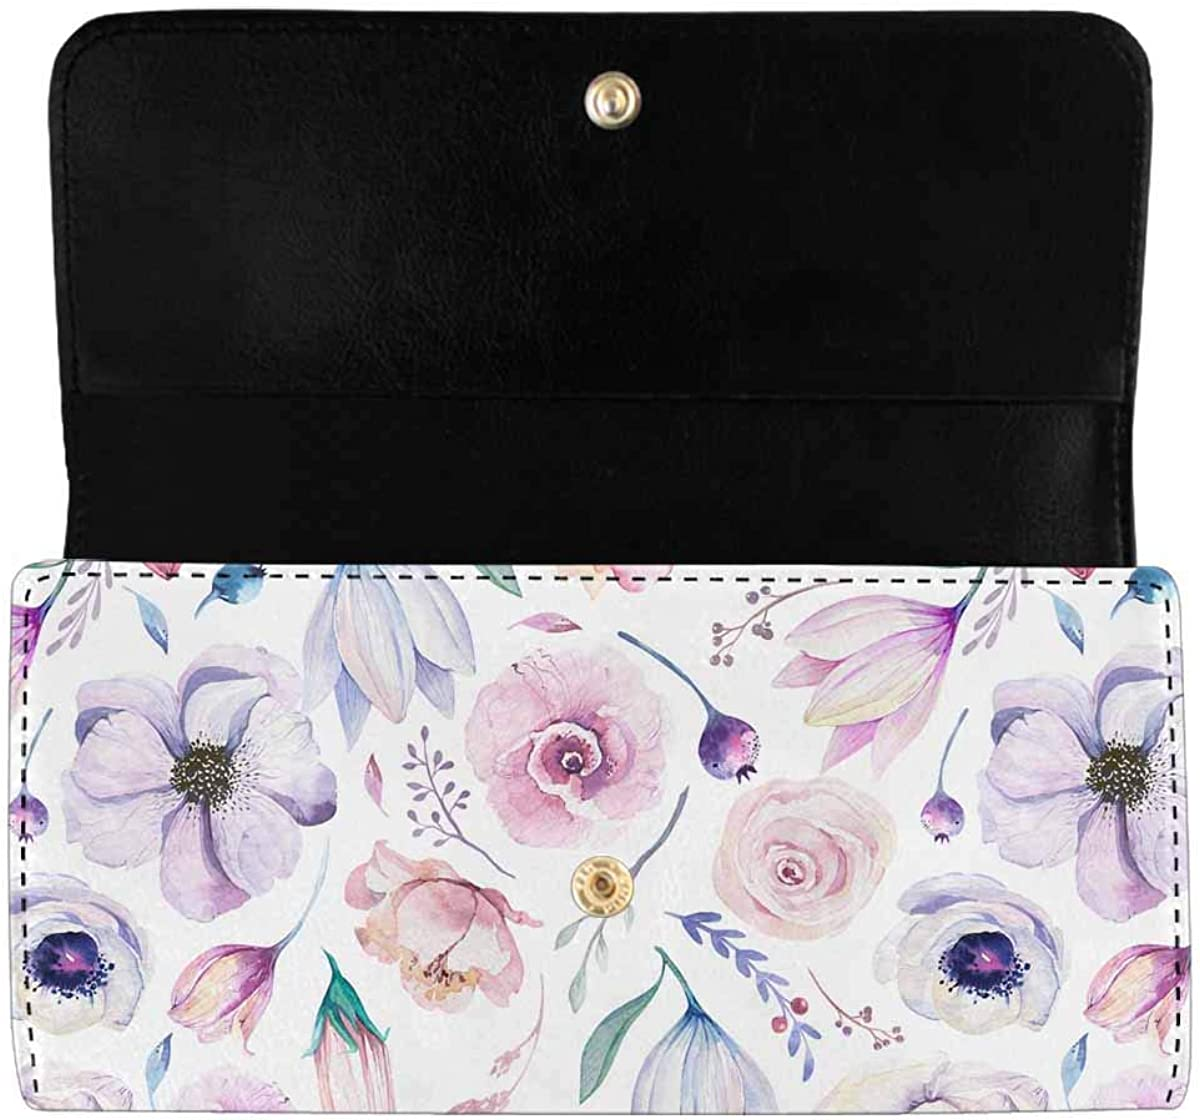 INTERESTPRINT Women's Trifold Long Clutch Purses Spring Blossom Tree Blooming Tree Card Holder Wallet